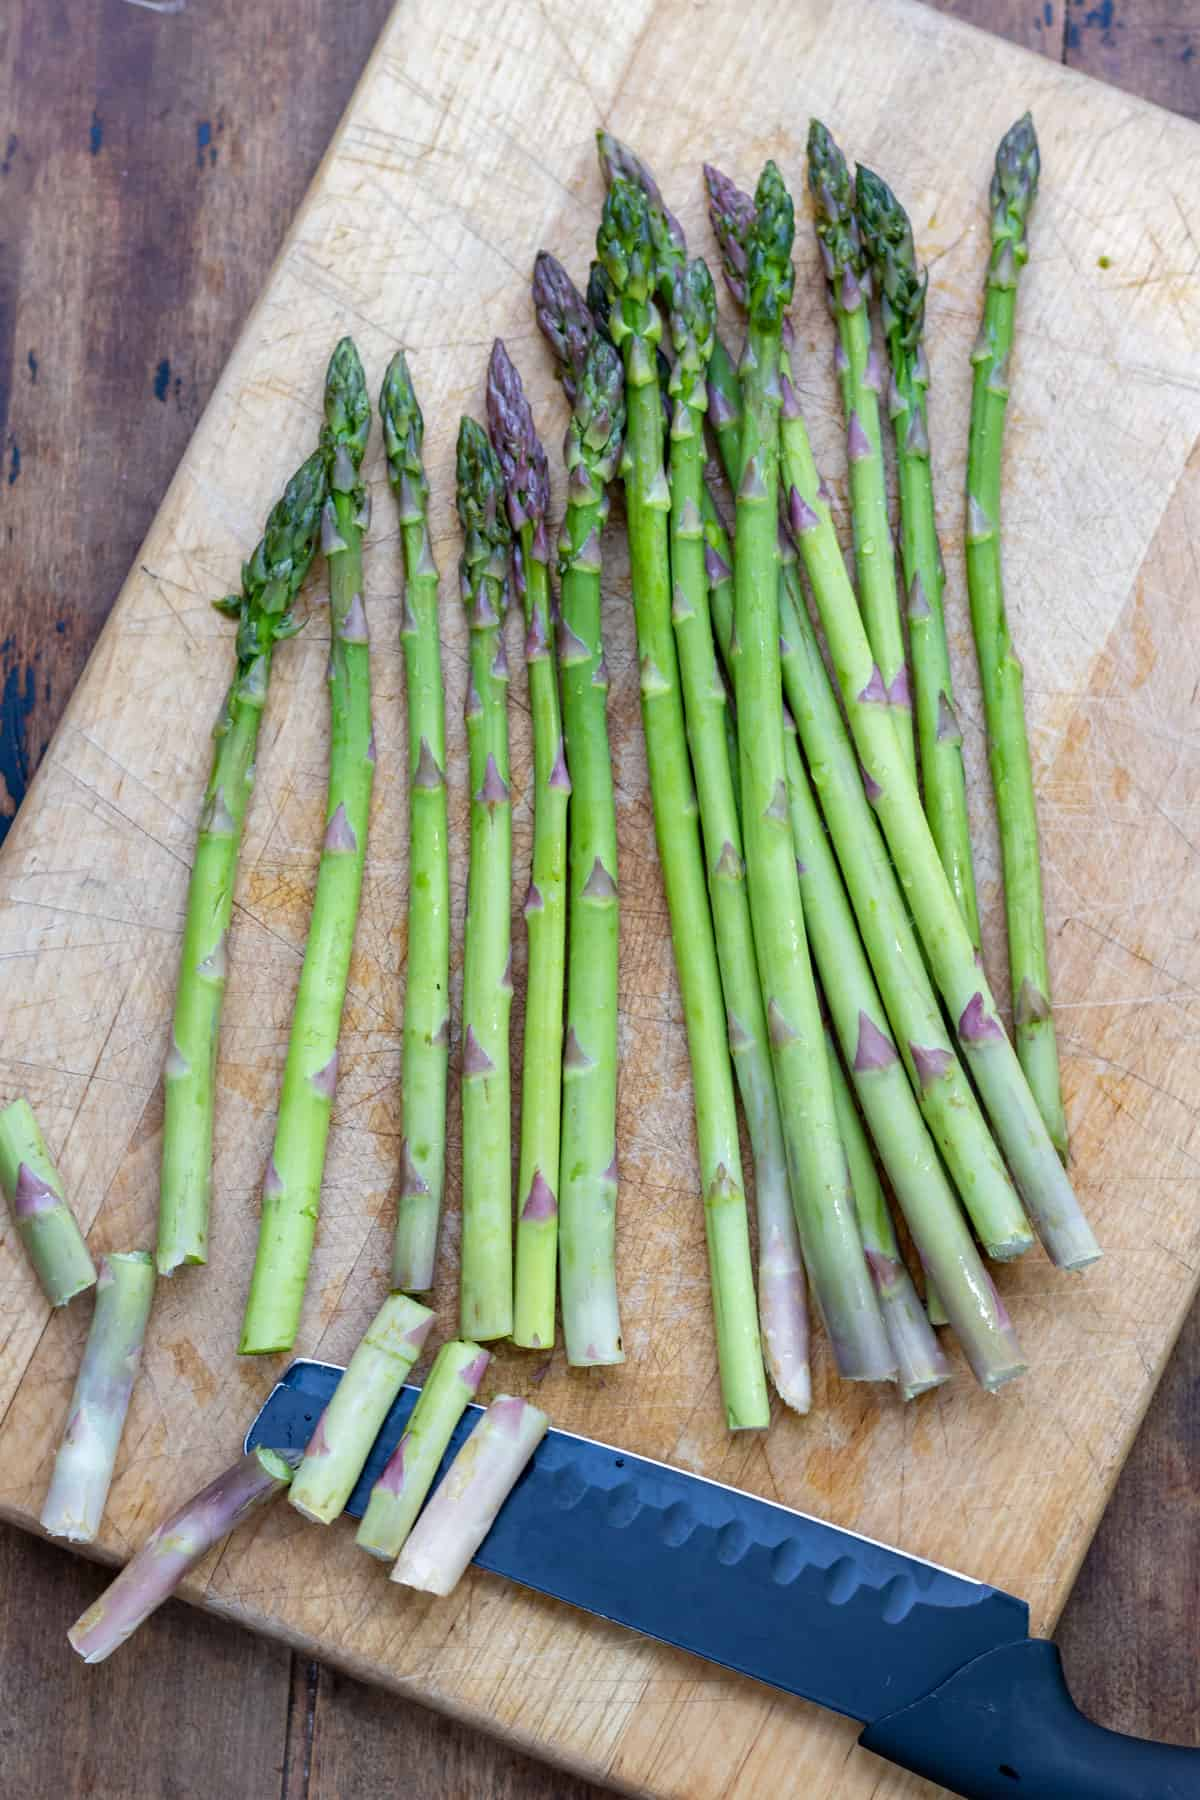 Trimming asparagus on a wooden cutting board.